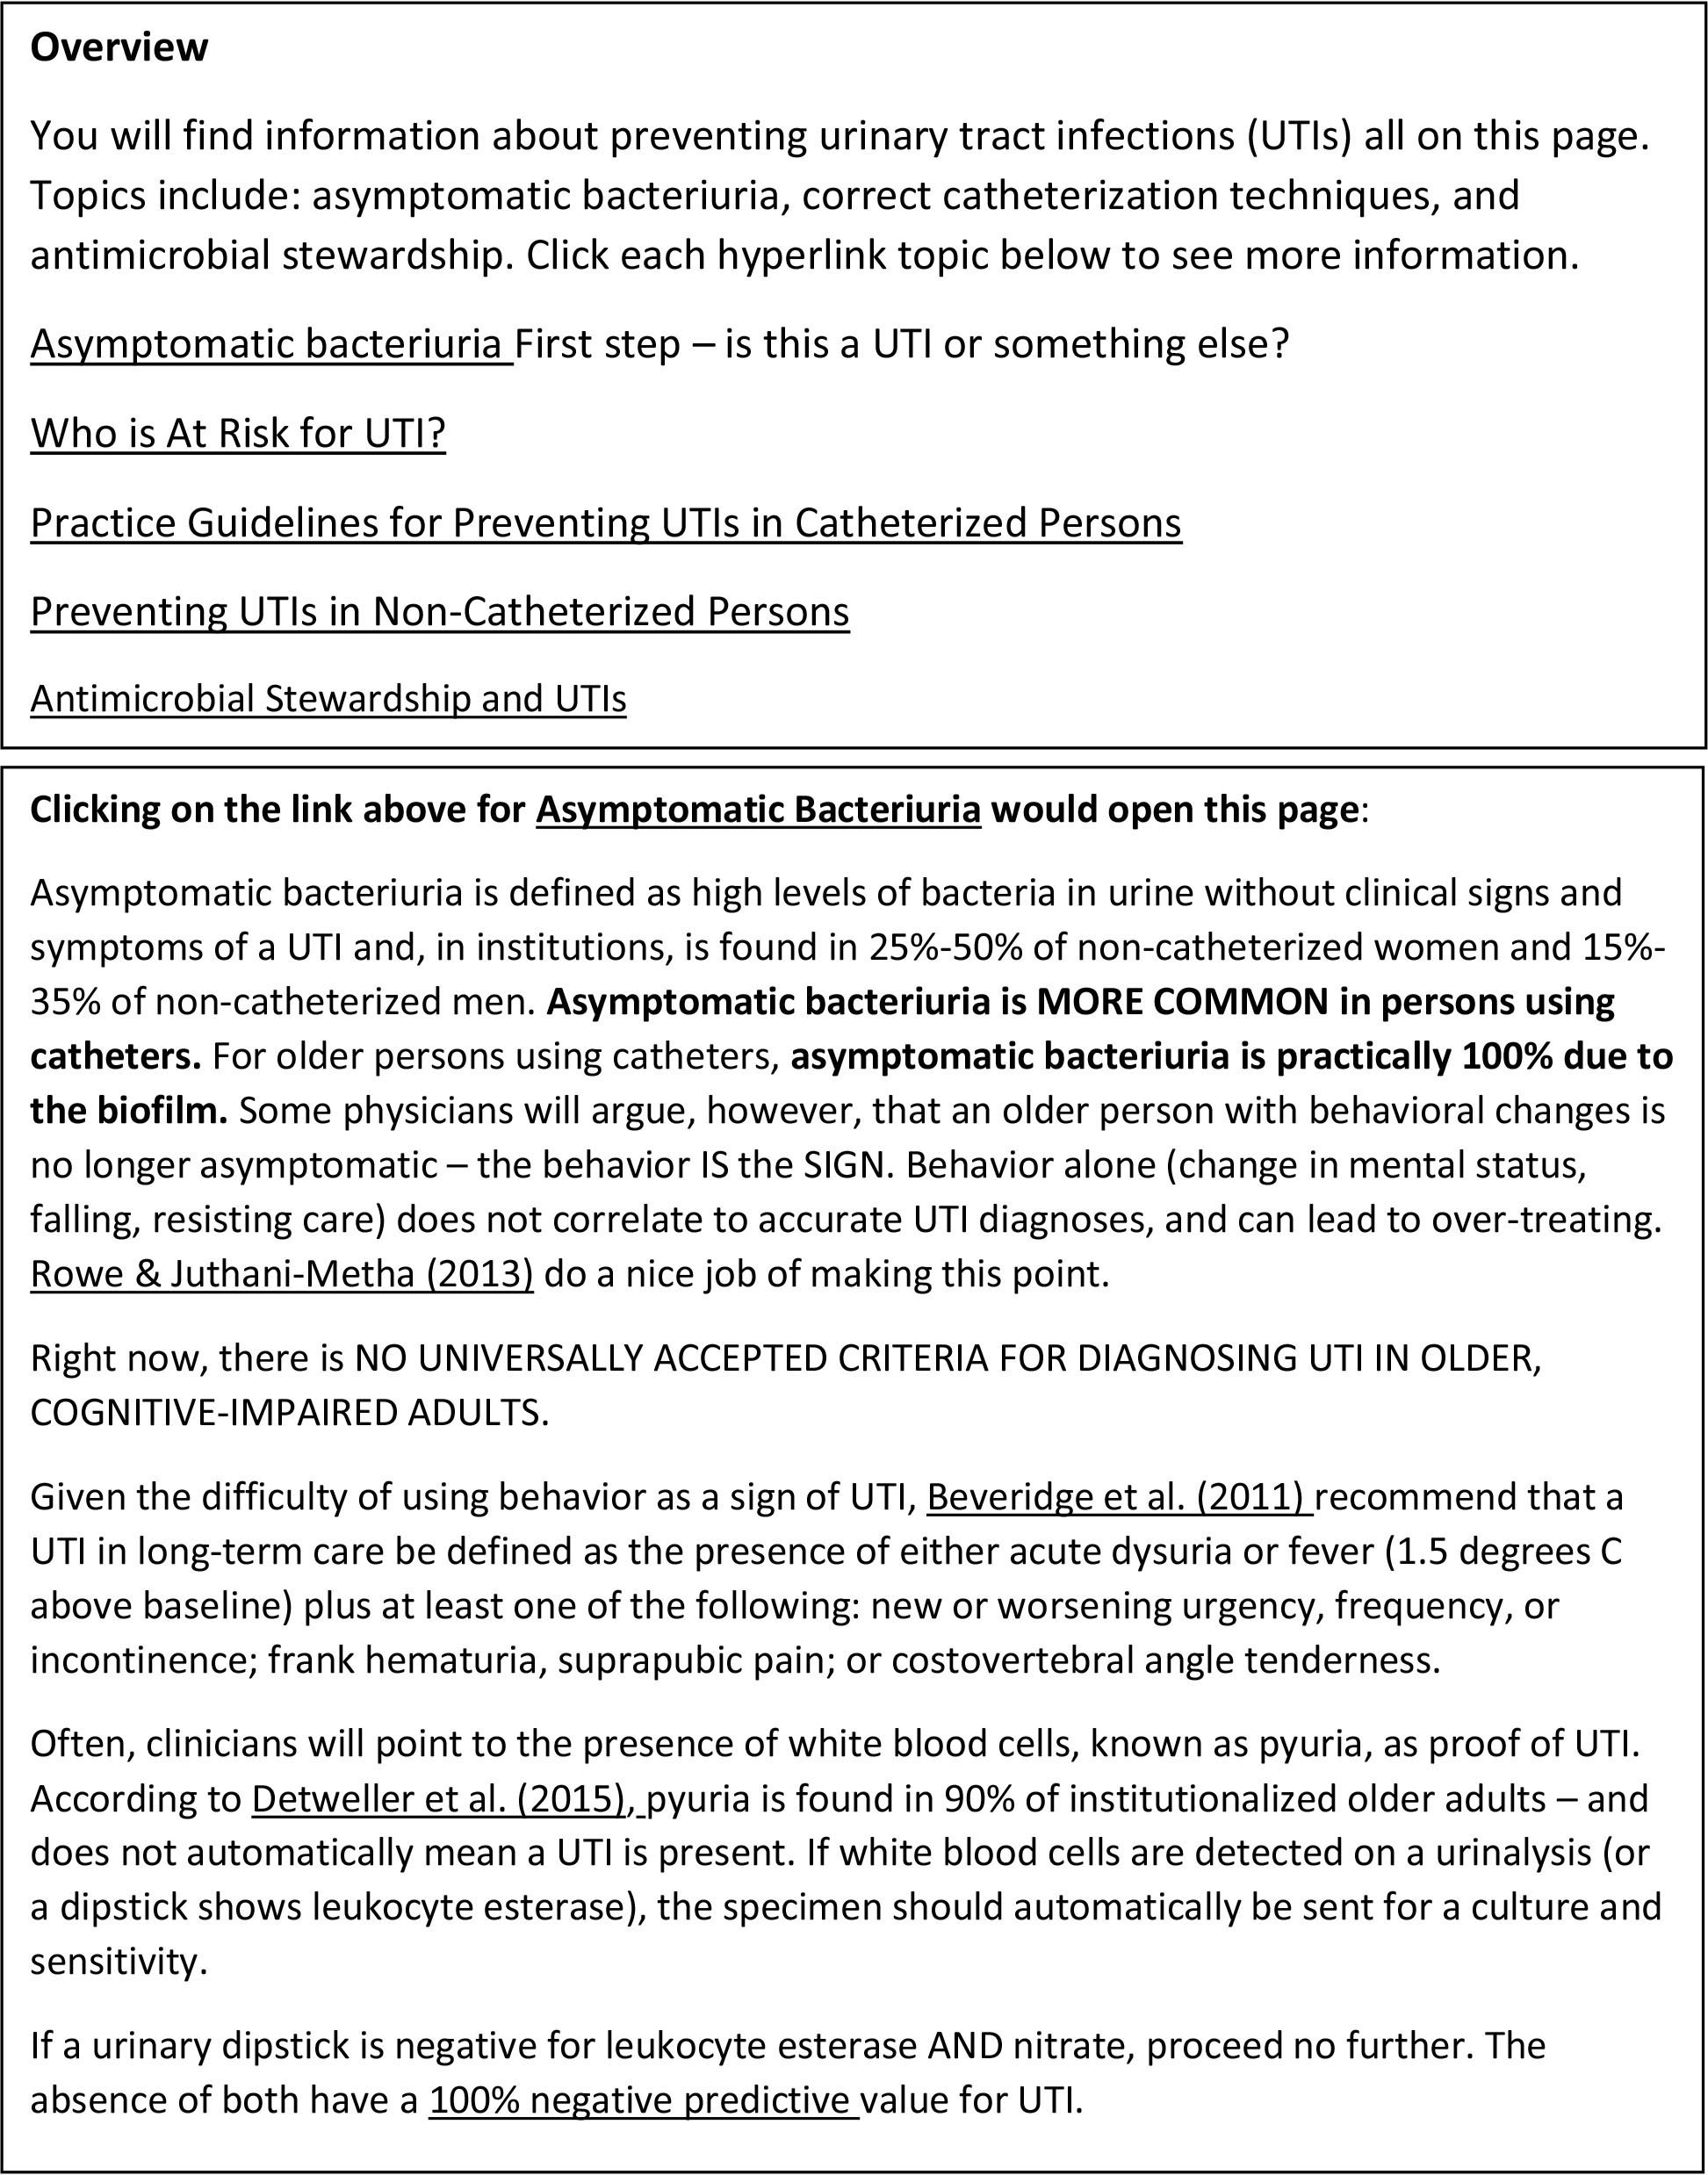 Example of Gero Central Course Module on Urinary Tract InfectionsNote: All items underlined are hyperlinks to additional resources.